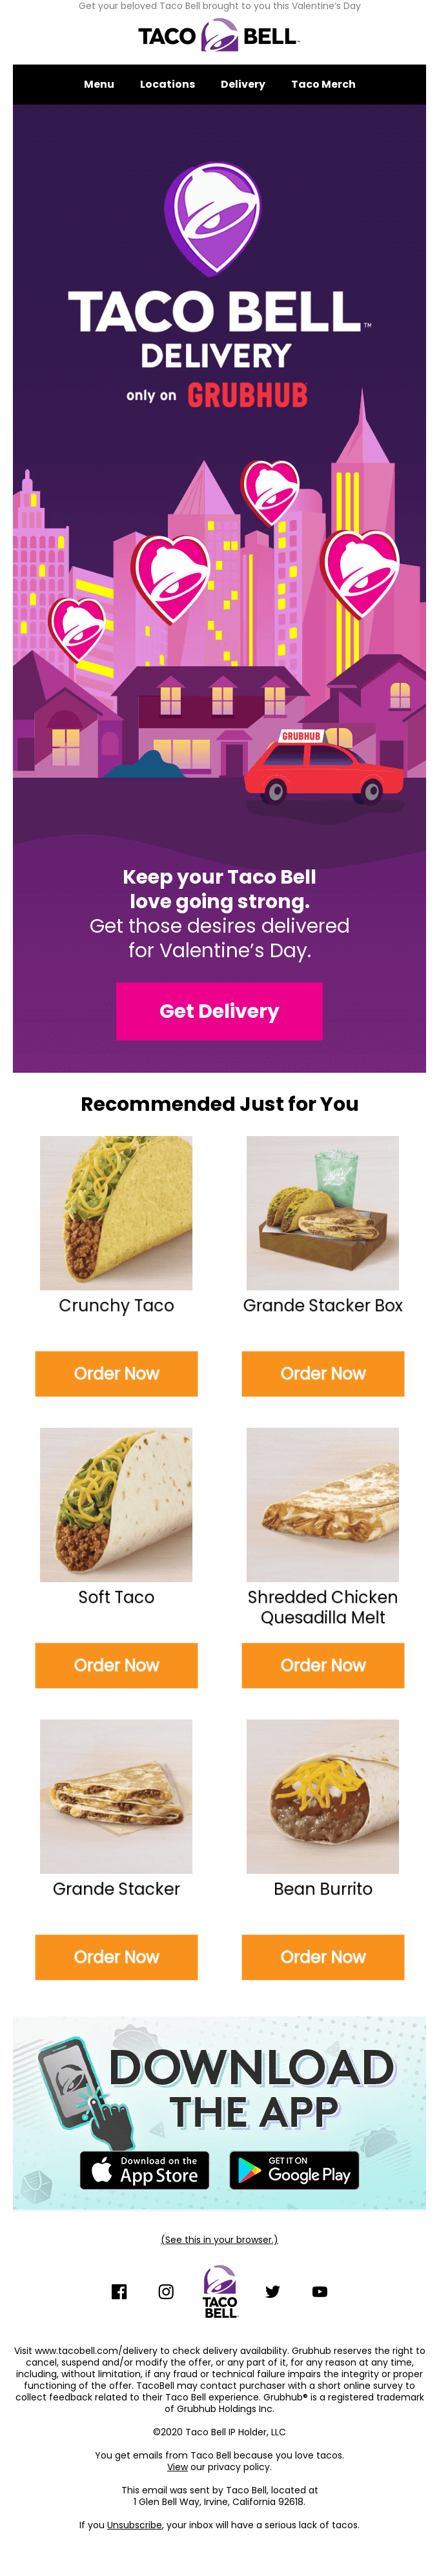 Taco Bell's Valentine's Day email.